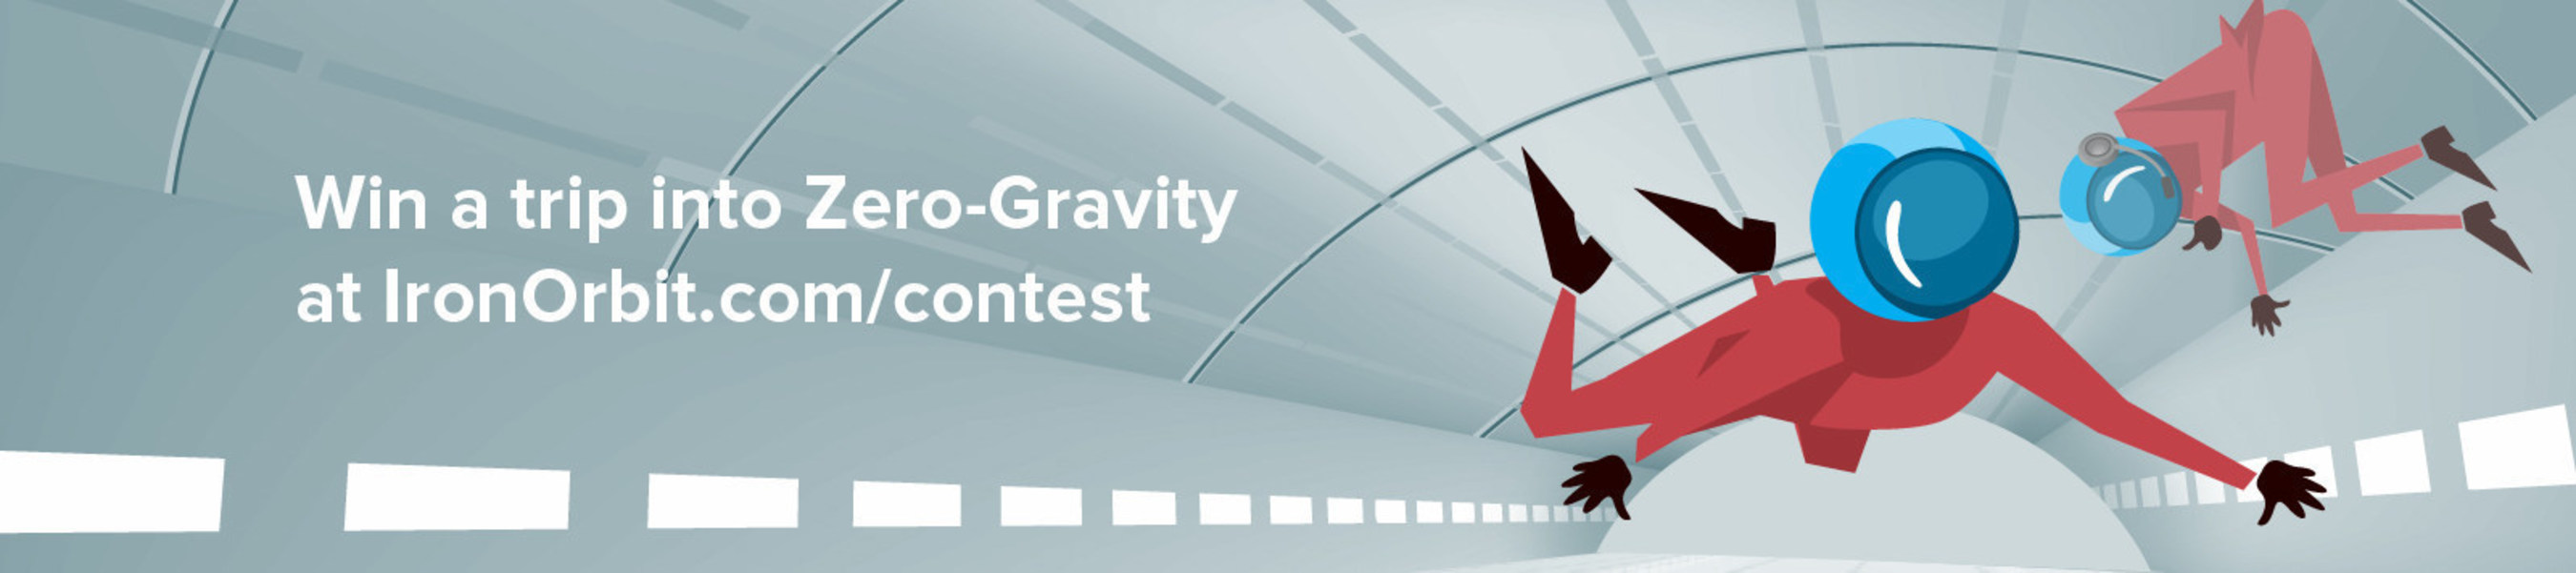 Win a trip into Zero Gravity with Iron Orbit, head on over to IronOrbit.com/contest to enter and win this once in a lifetime opportunity.